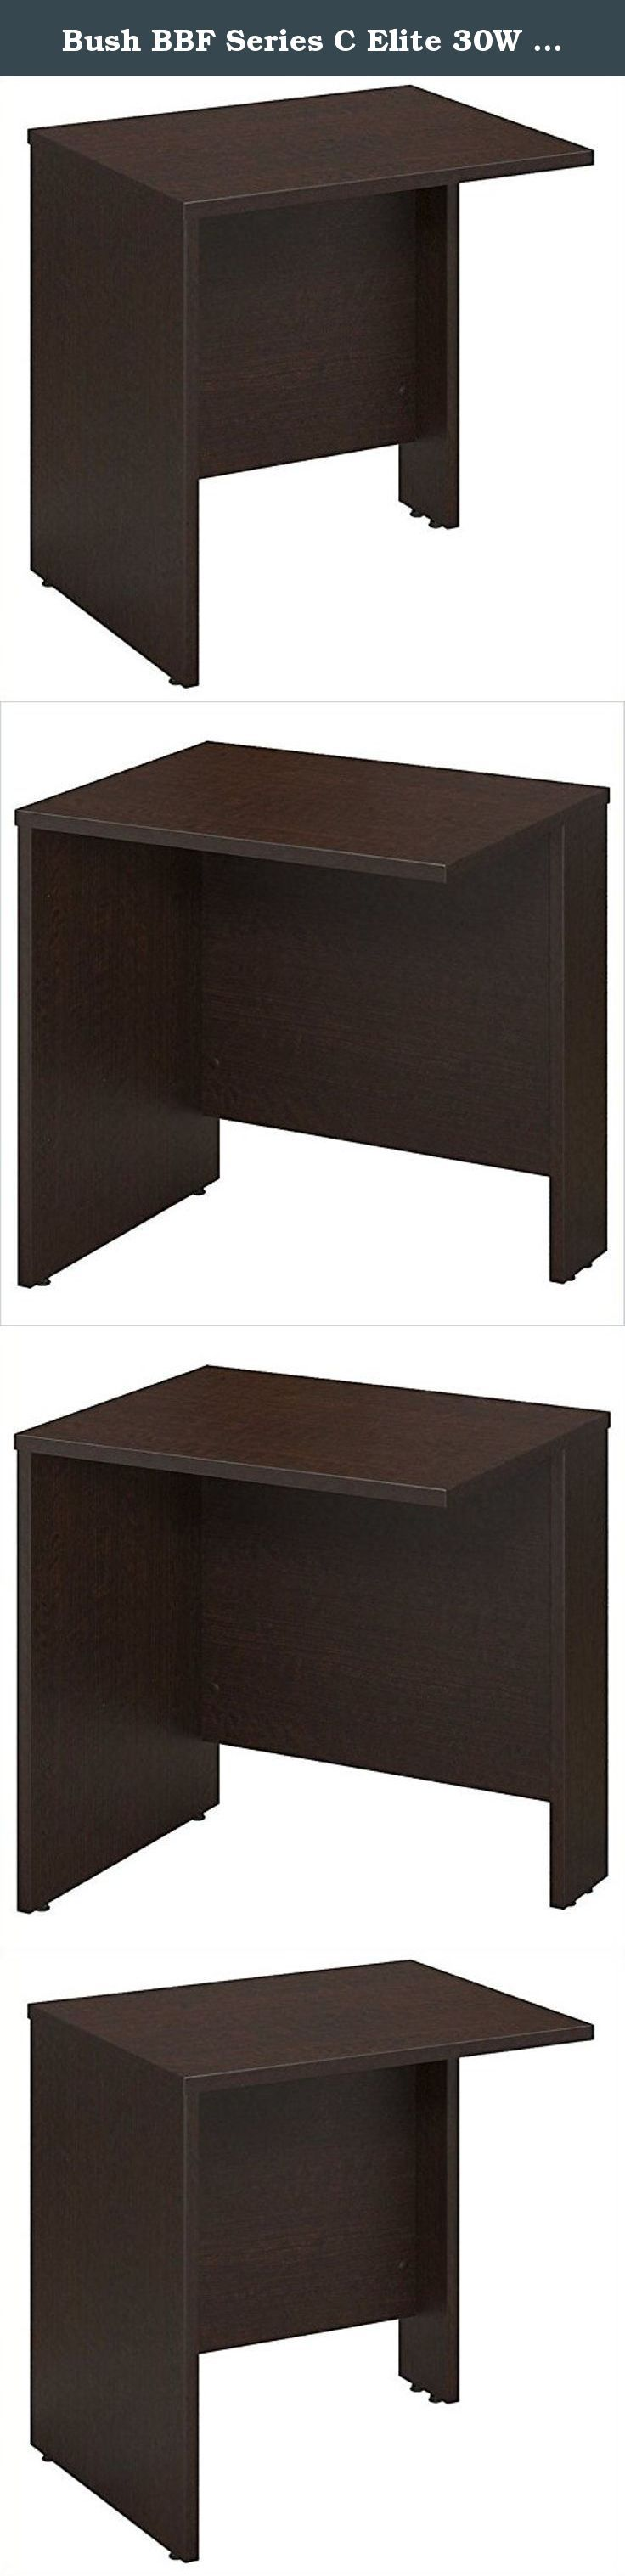 Bush BBF Series C Elite 30W x 24D Bridge-Return in Mocha Cherry. Manage your changing workspace with Series C Elite 30W x 24D Bridge/Return in Mocha Cherry inspires you to personalize your office design. It works as a bridge between two desks or a return to form an L shaped desk configuration. This component must be attached at both ends to a Desk, Credenza and Return or Return/Bridge, and is not freestanding. The thermally fused laminate construction delivers strength and durability with…